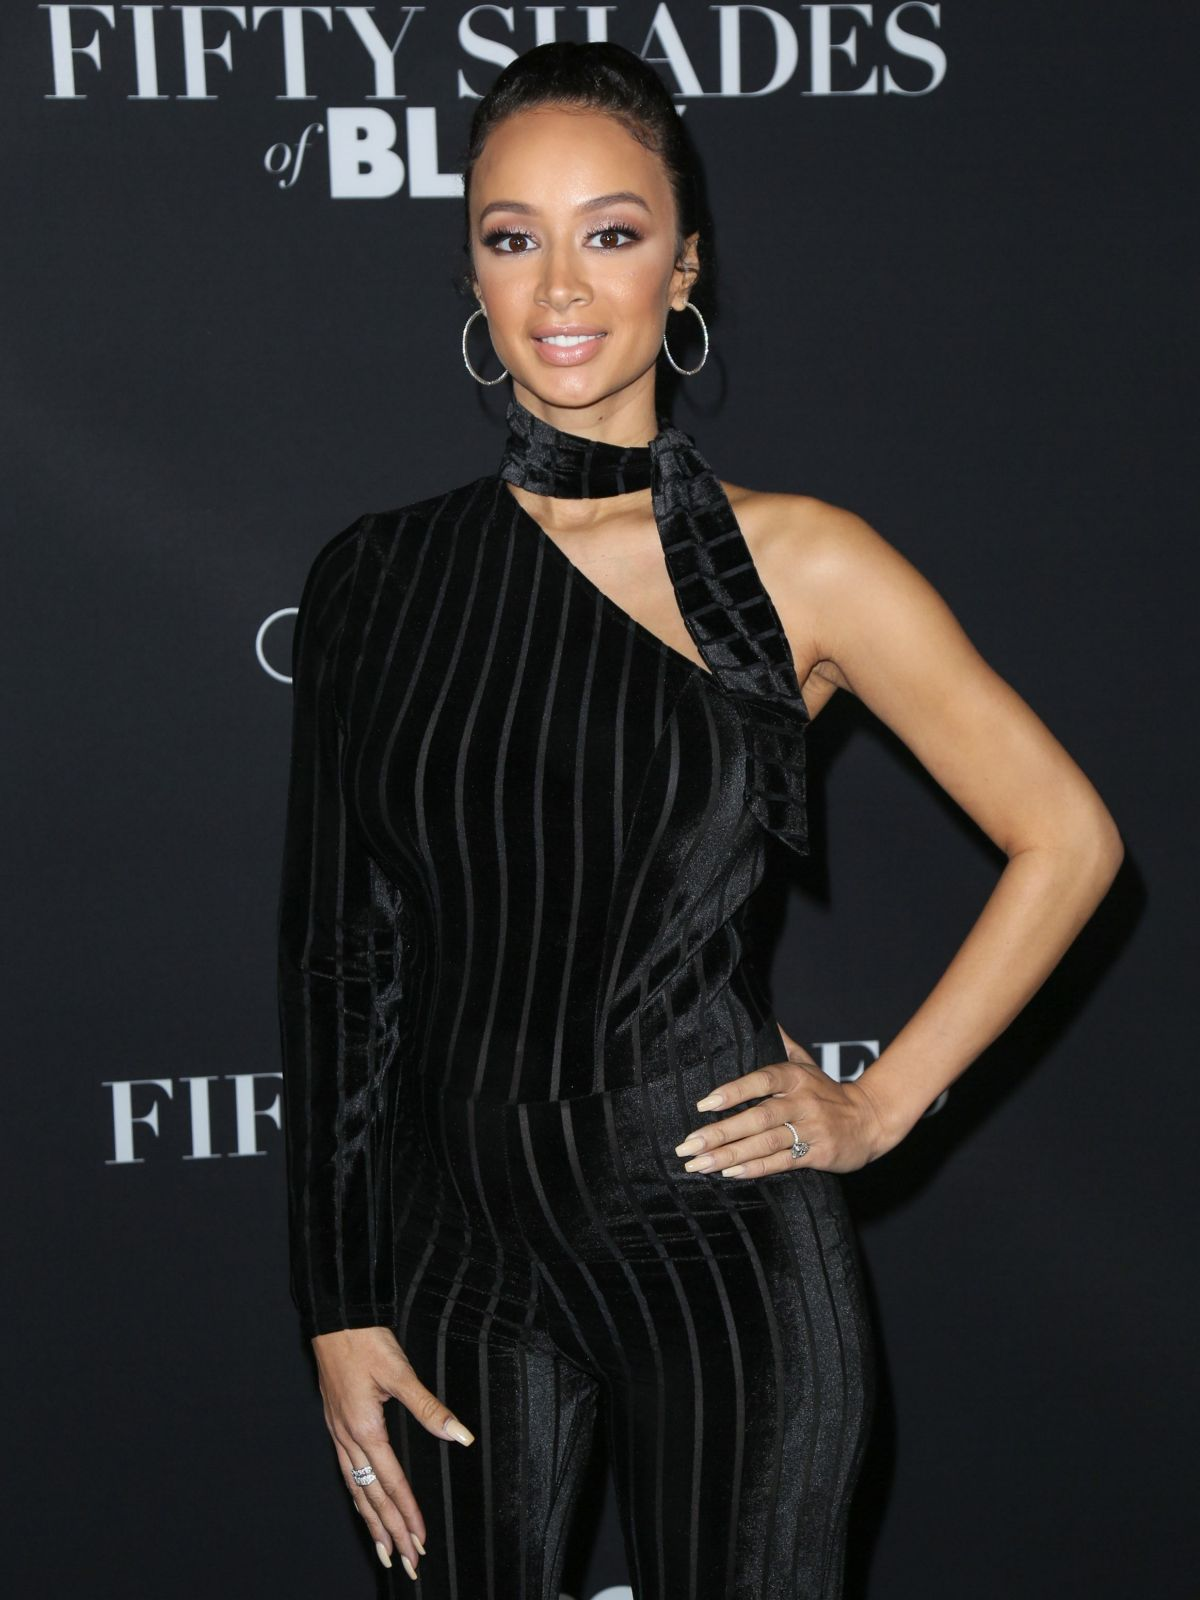 Draya michele hawtcelebs draya michele at fifty shades of black premiere in los angeles 01262016 voltagebd Images